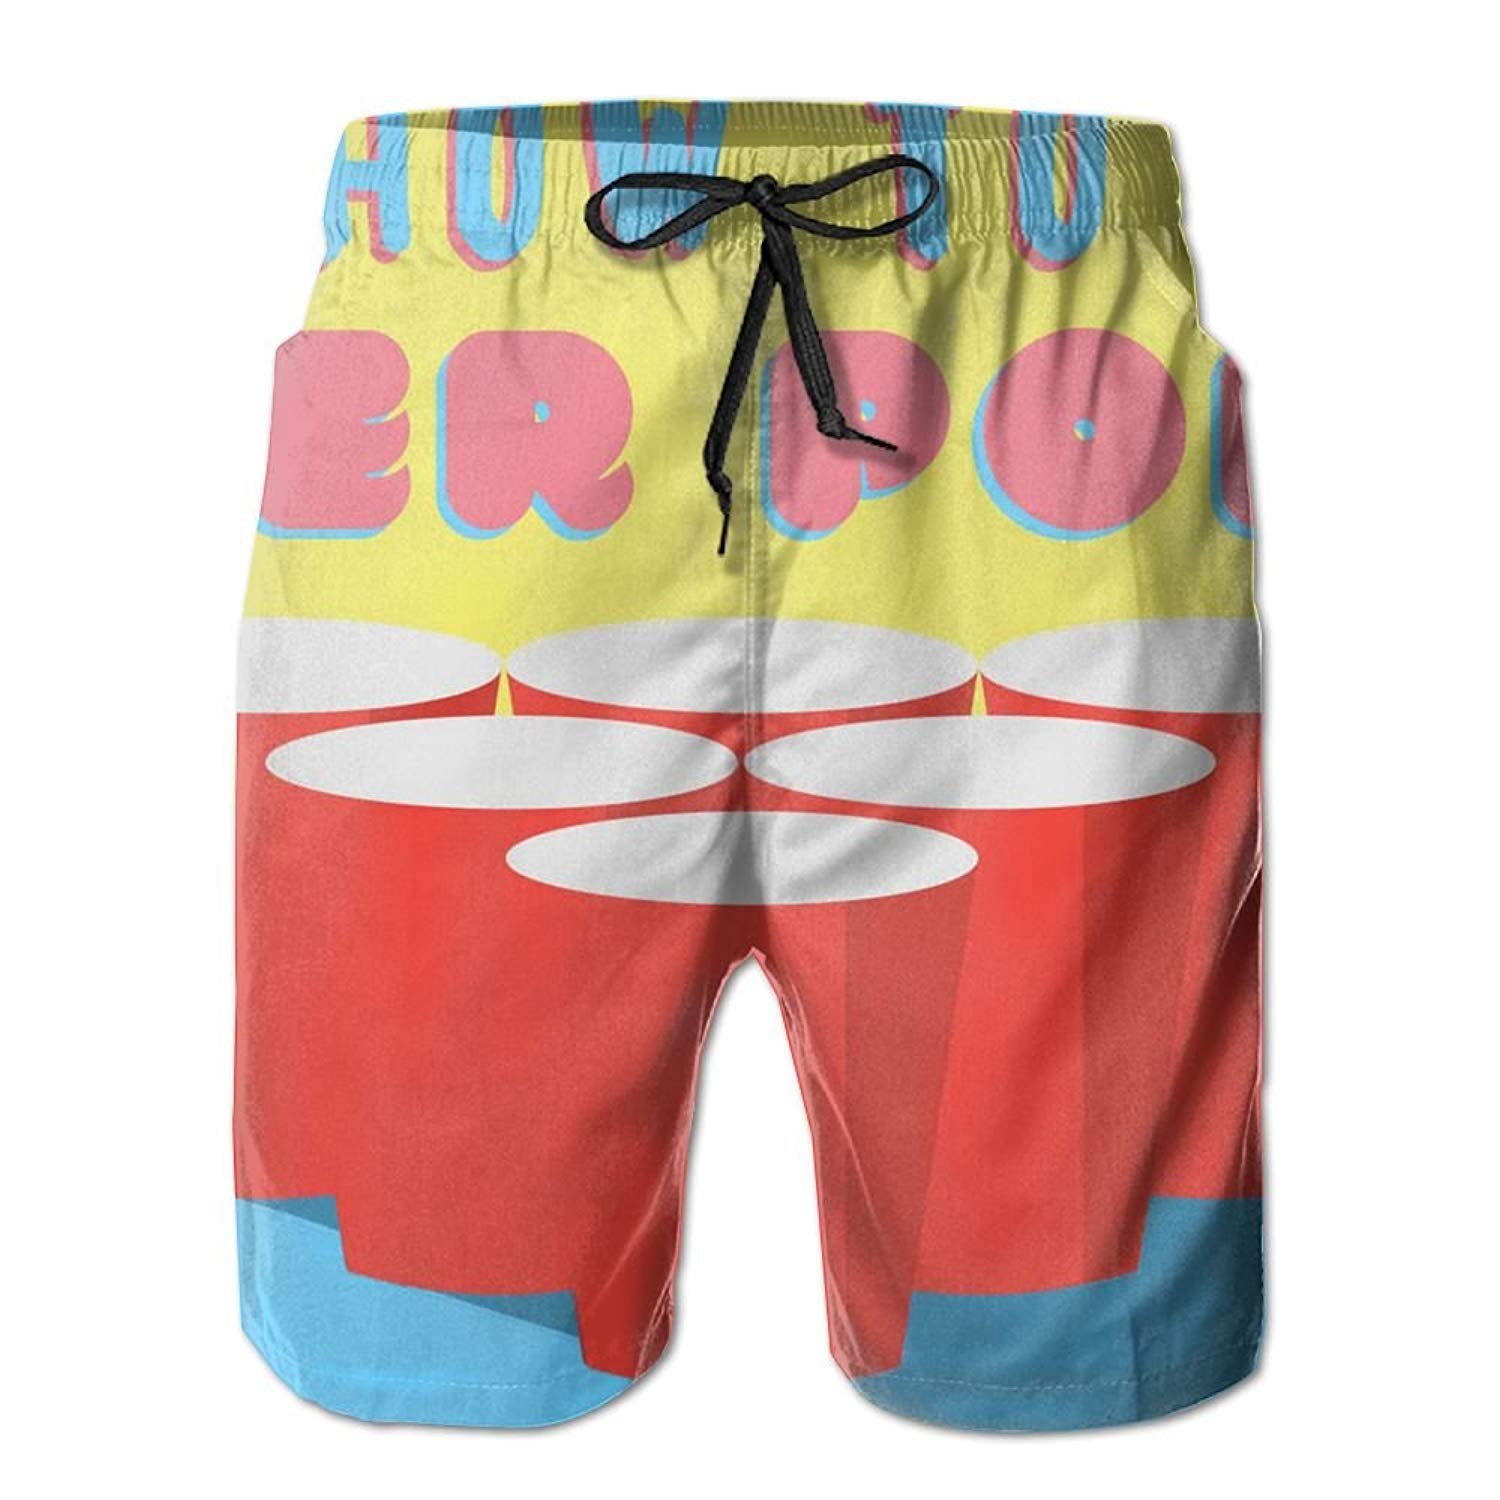 b44c87dabb Get Quotations · Cjhxqt Beer Pong Mens Boardshorts Swim Trunks Quick Dry  Gym Shorts Mens Swim Trunks